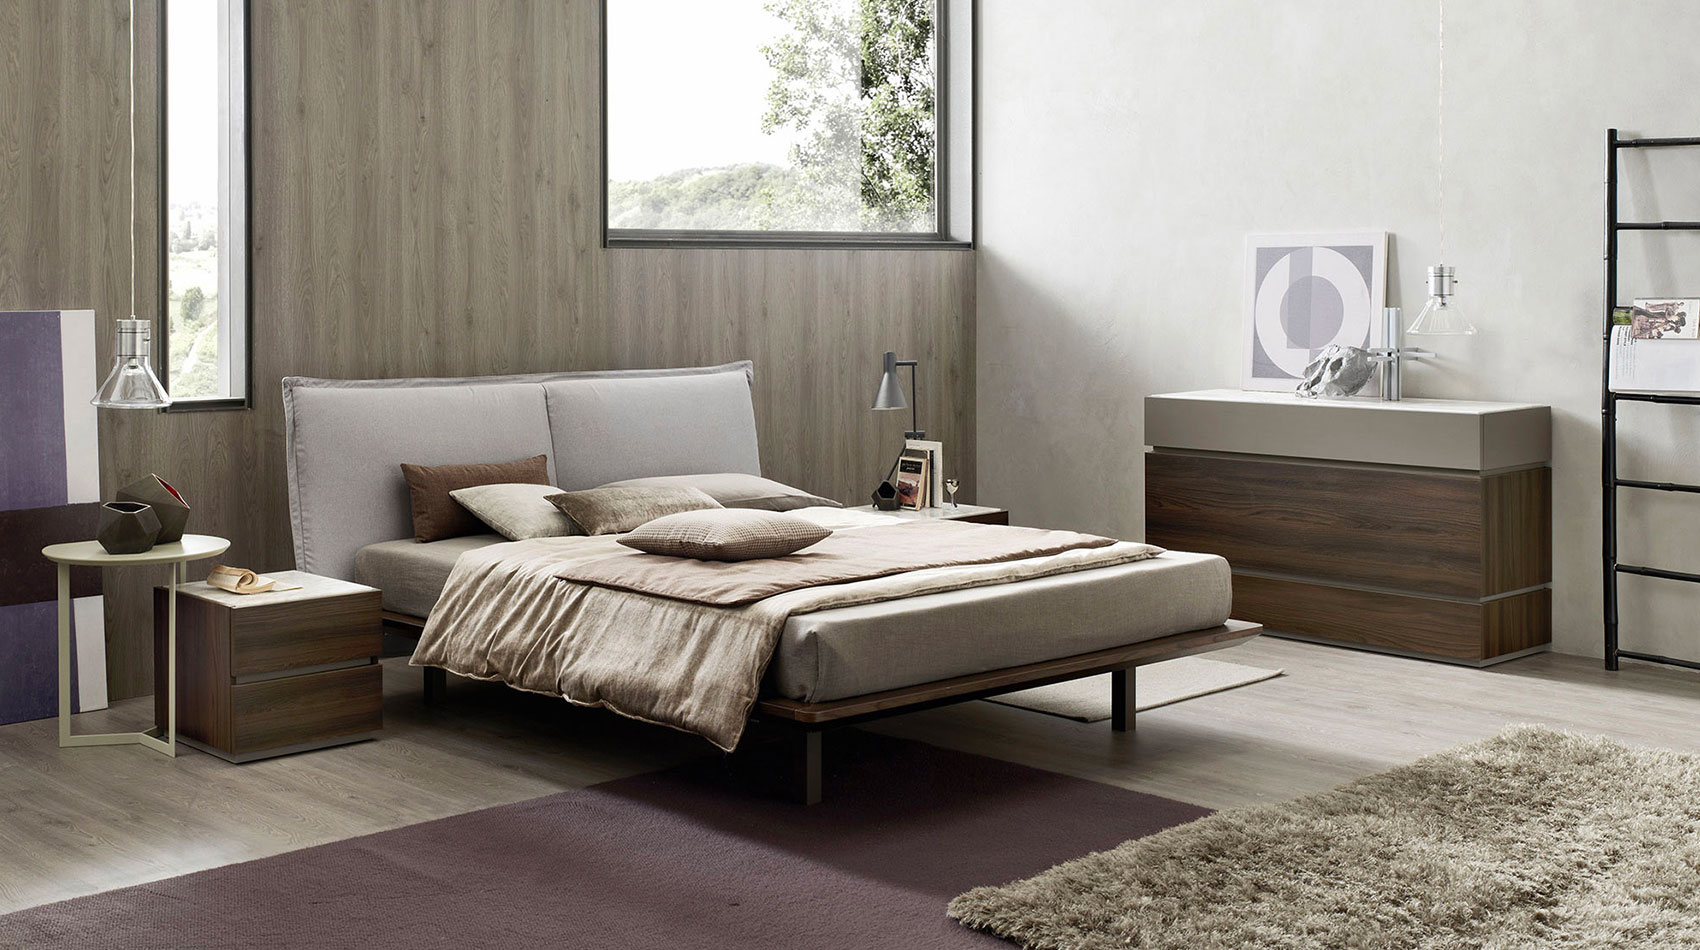 Orme design furniture made in italy for Design made in italy